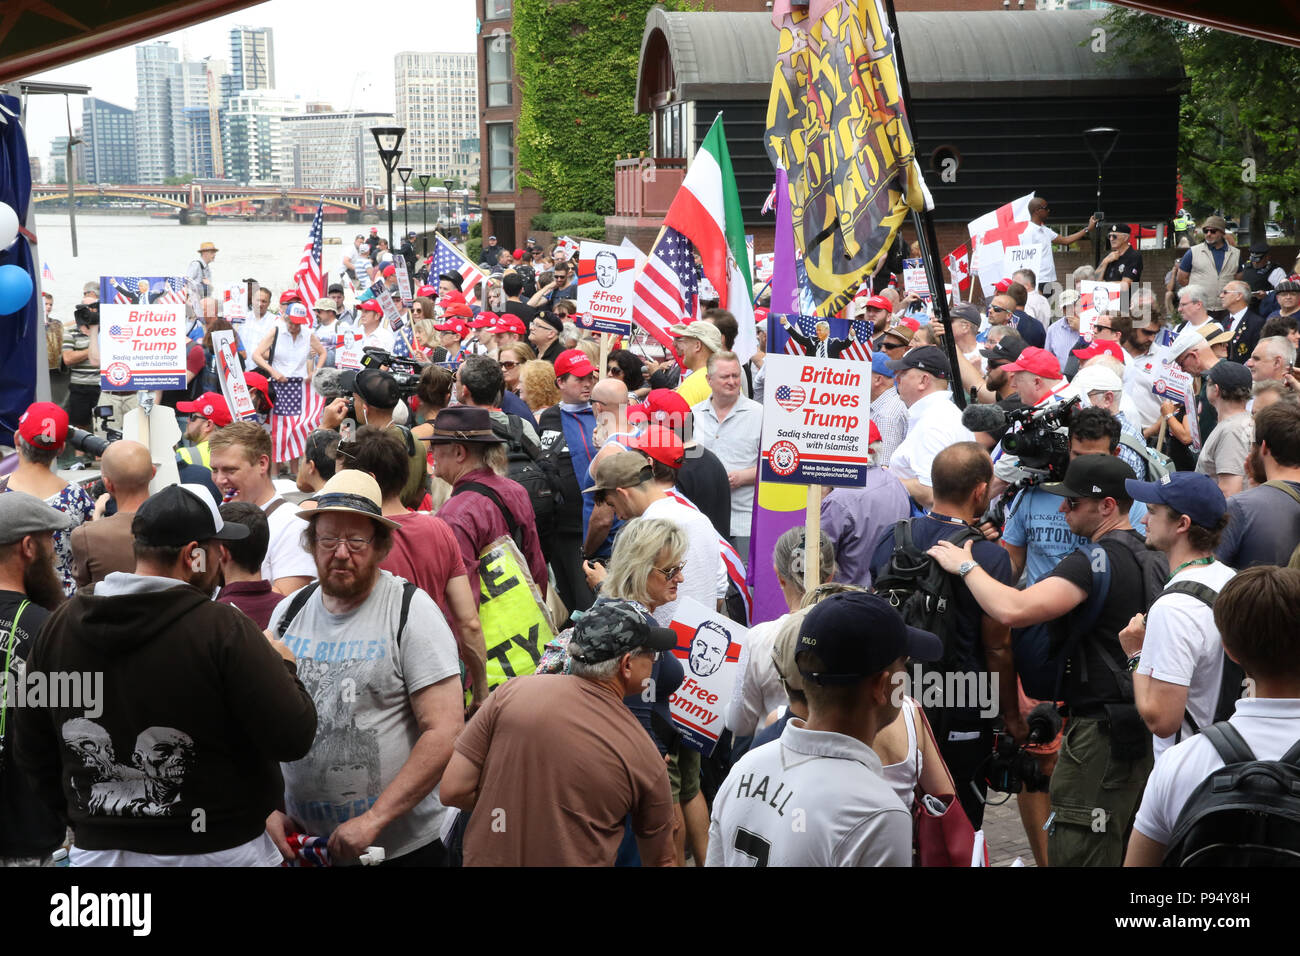 London, England. 14th July 2018. Despite police attempts to prevent the pro-Trump protest due to fears of violence from far-left counter protesters, supporters of Donald Trump assembled at midday outside the US Embassy in Vauxhall, London to welcome him on his visit to the UK. Credit: Richard Milnes/Alamy Live News Stock Photo